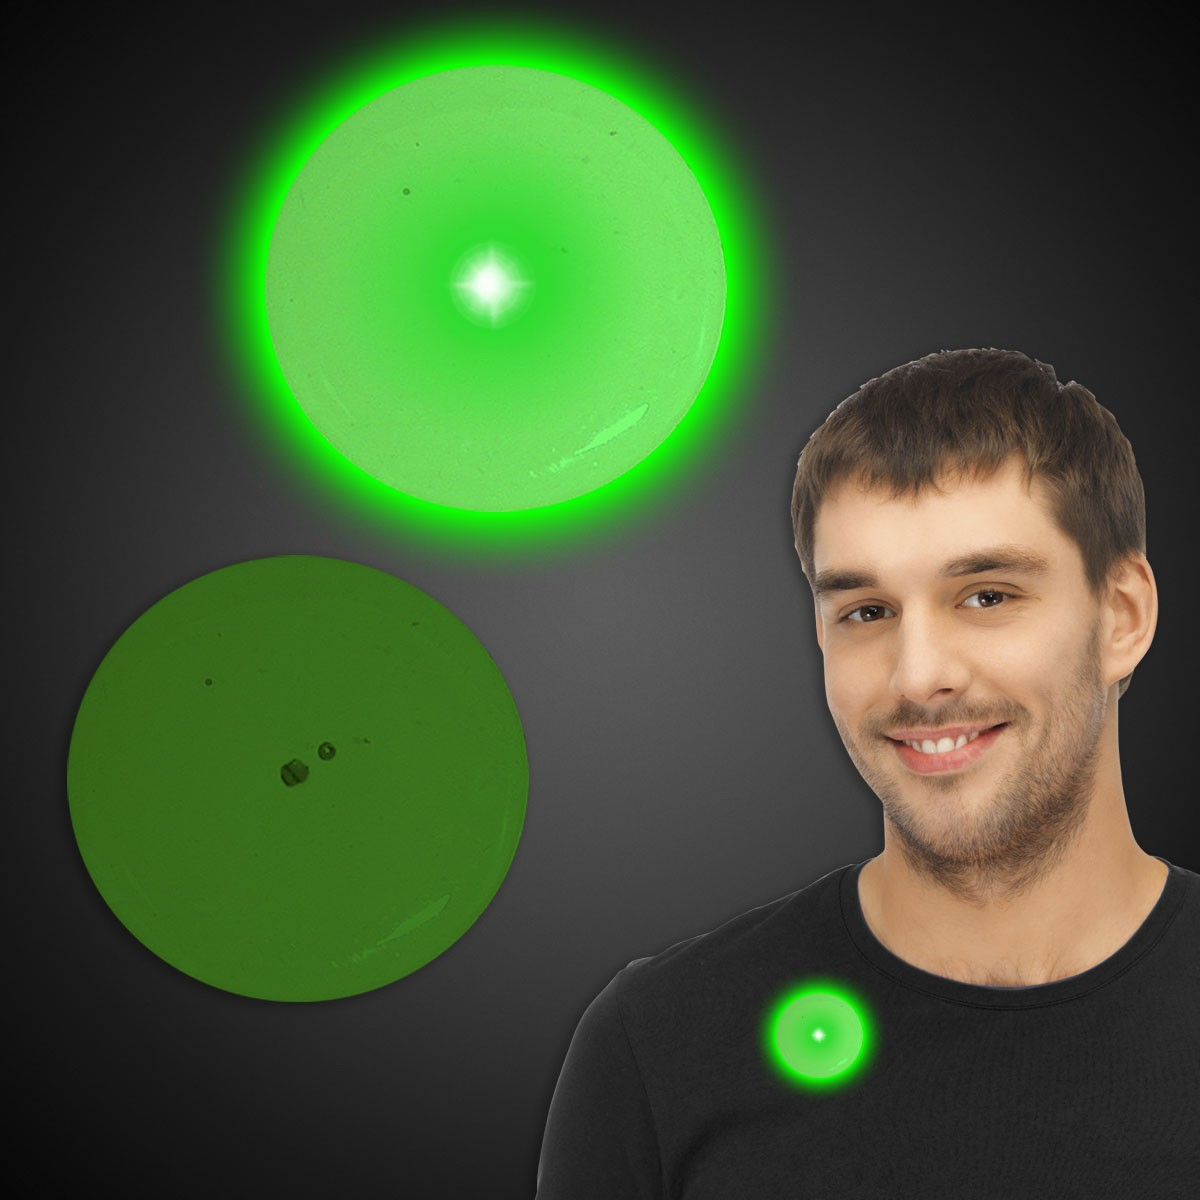 Flashing Green Circle LED Blinkies